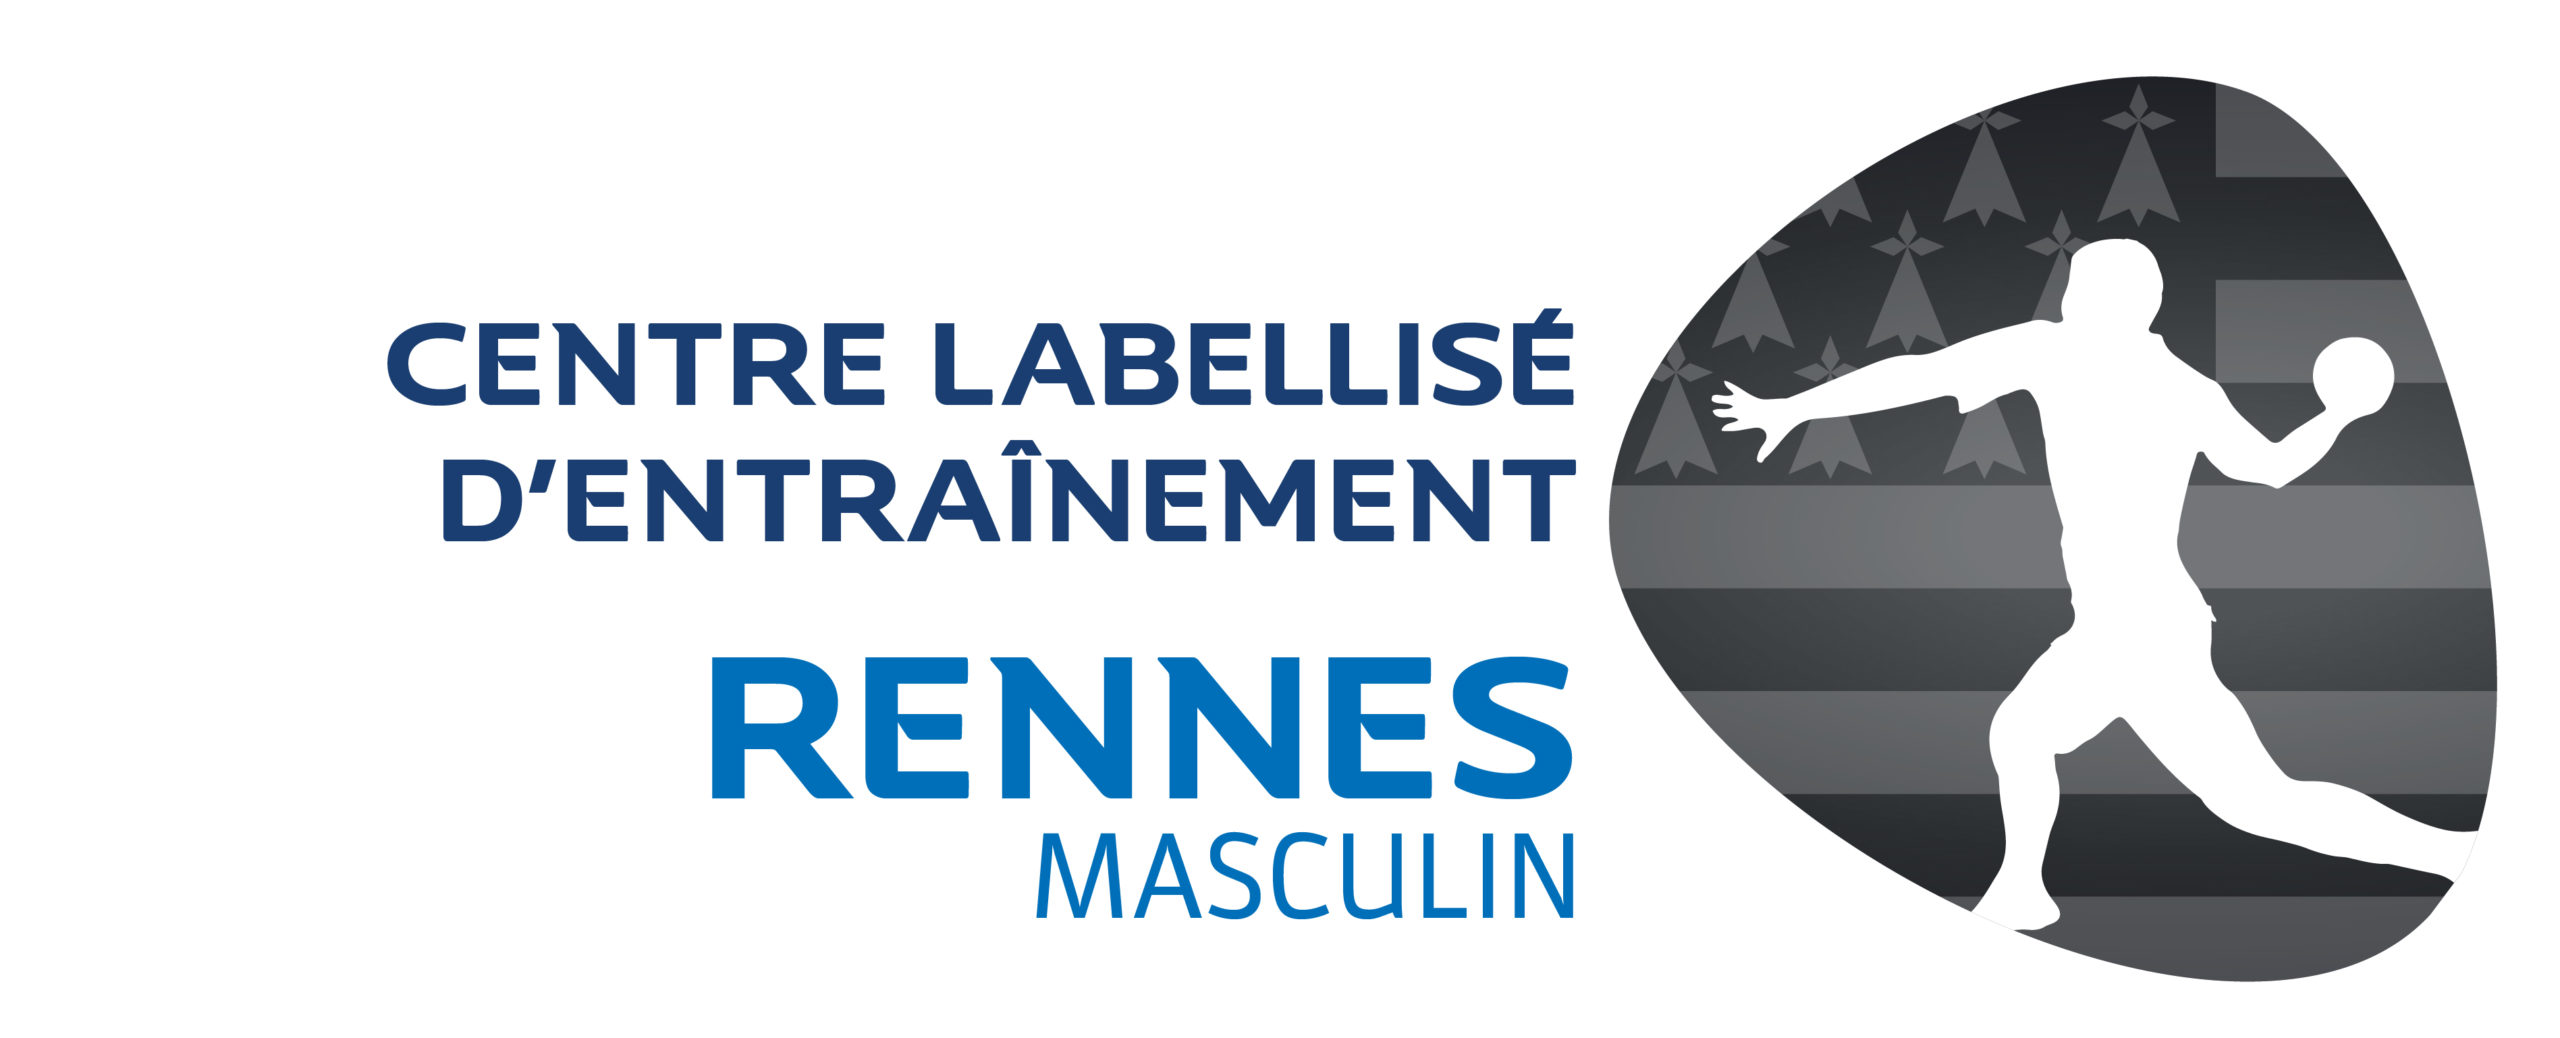 CLE_MASCULIN_RENNES_RVB-01